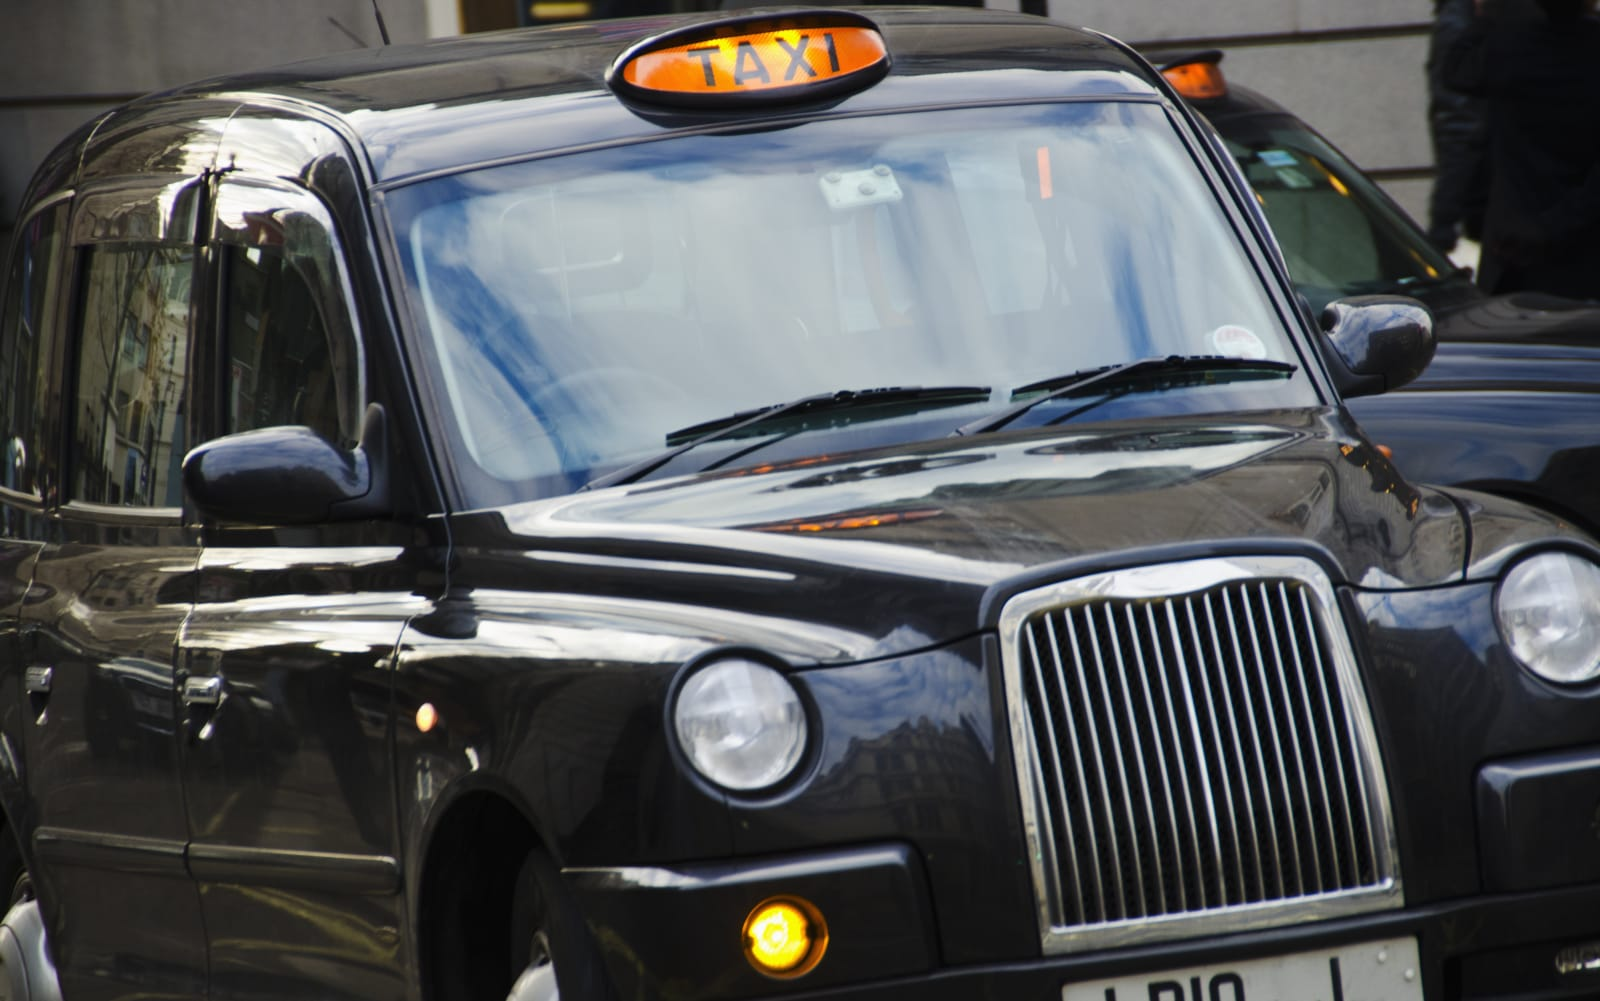 All London black cabs will